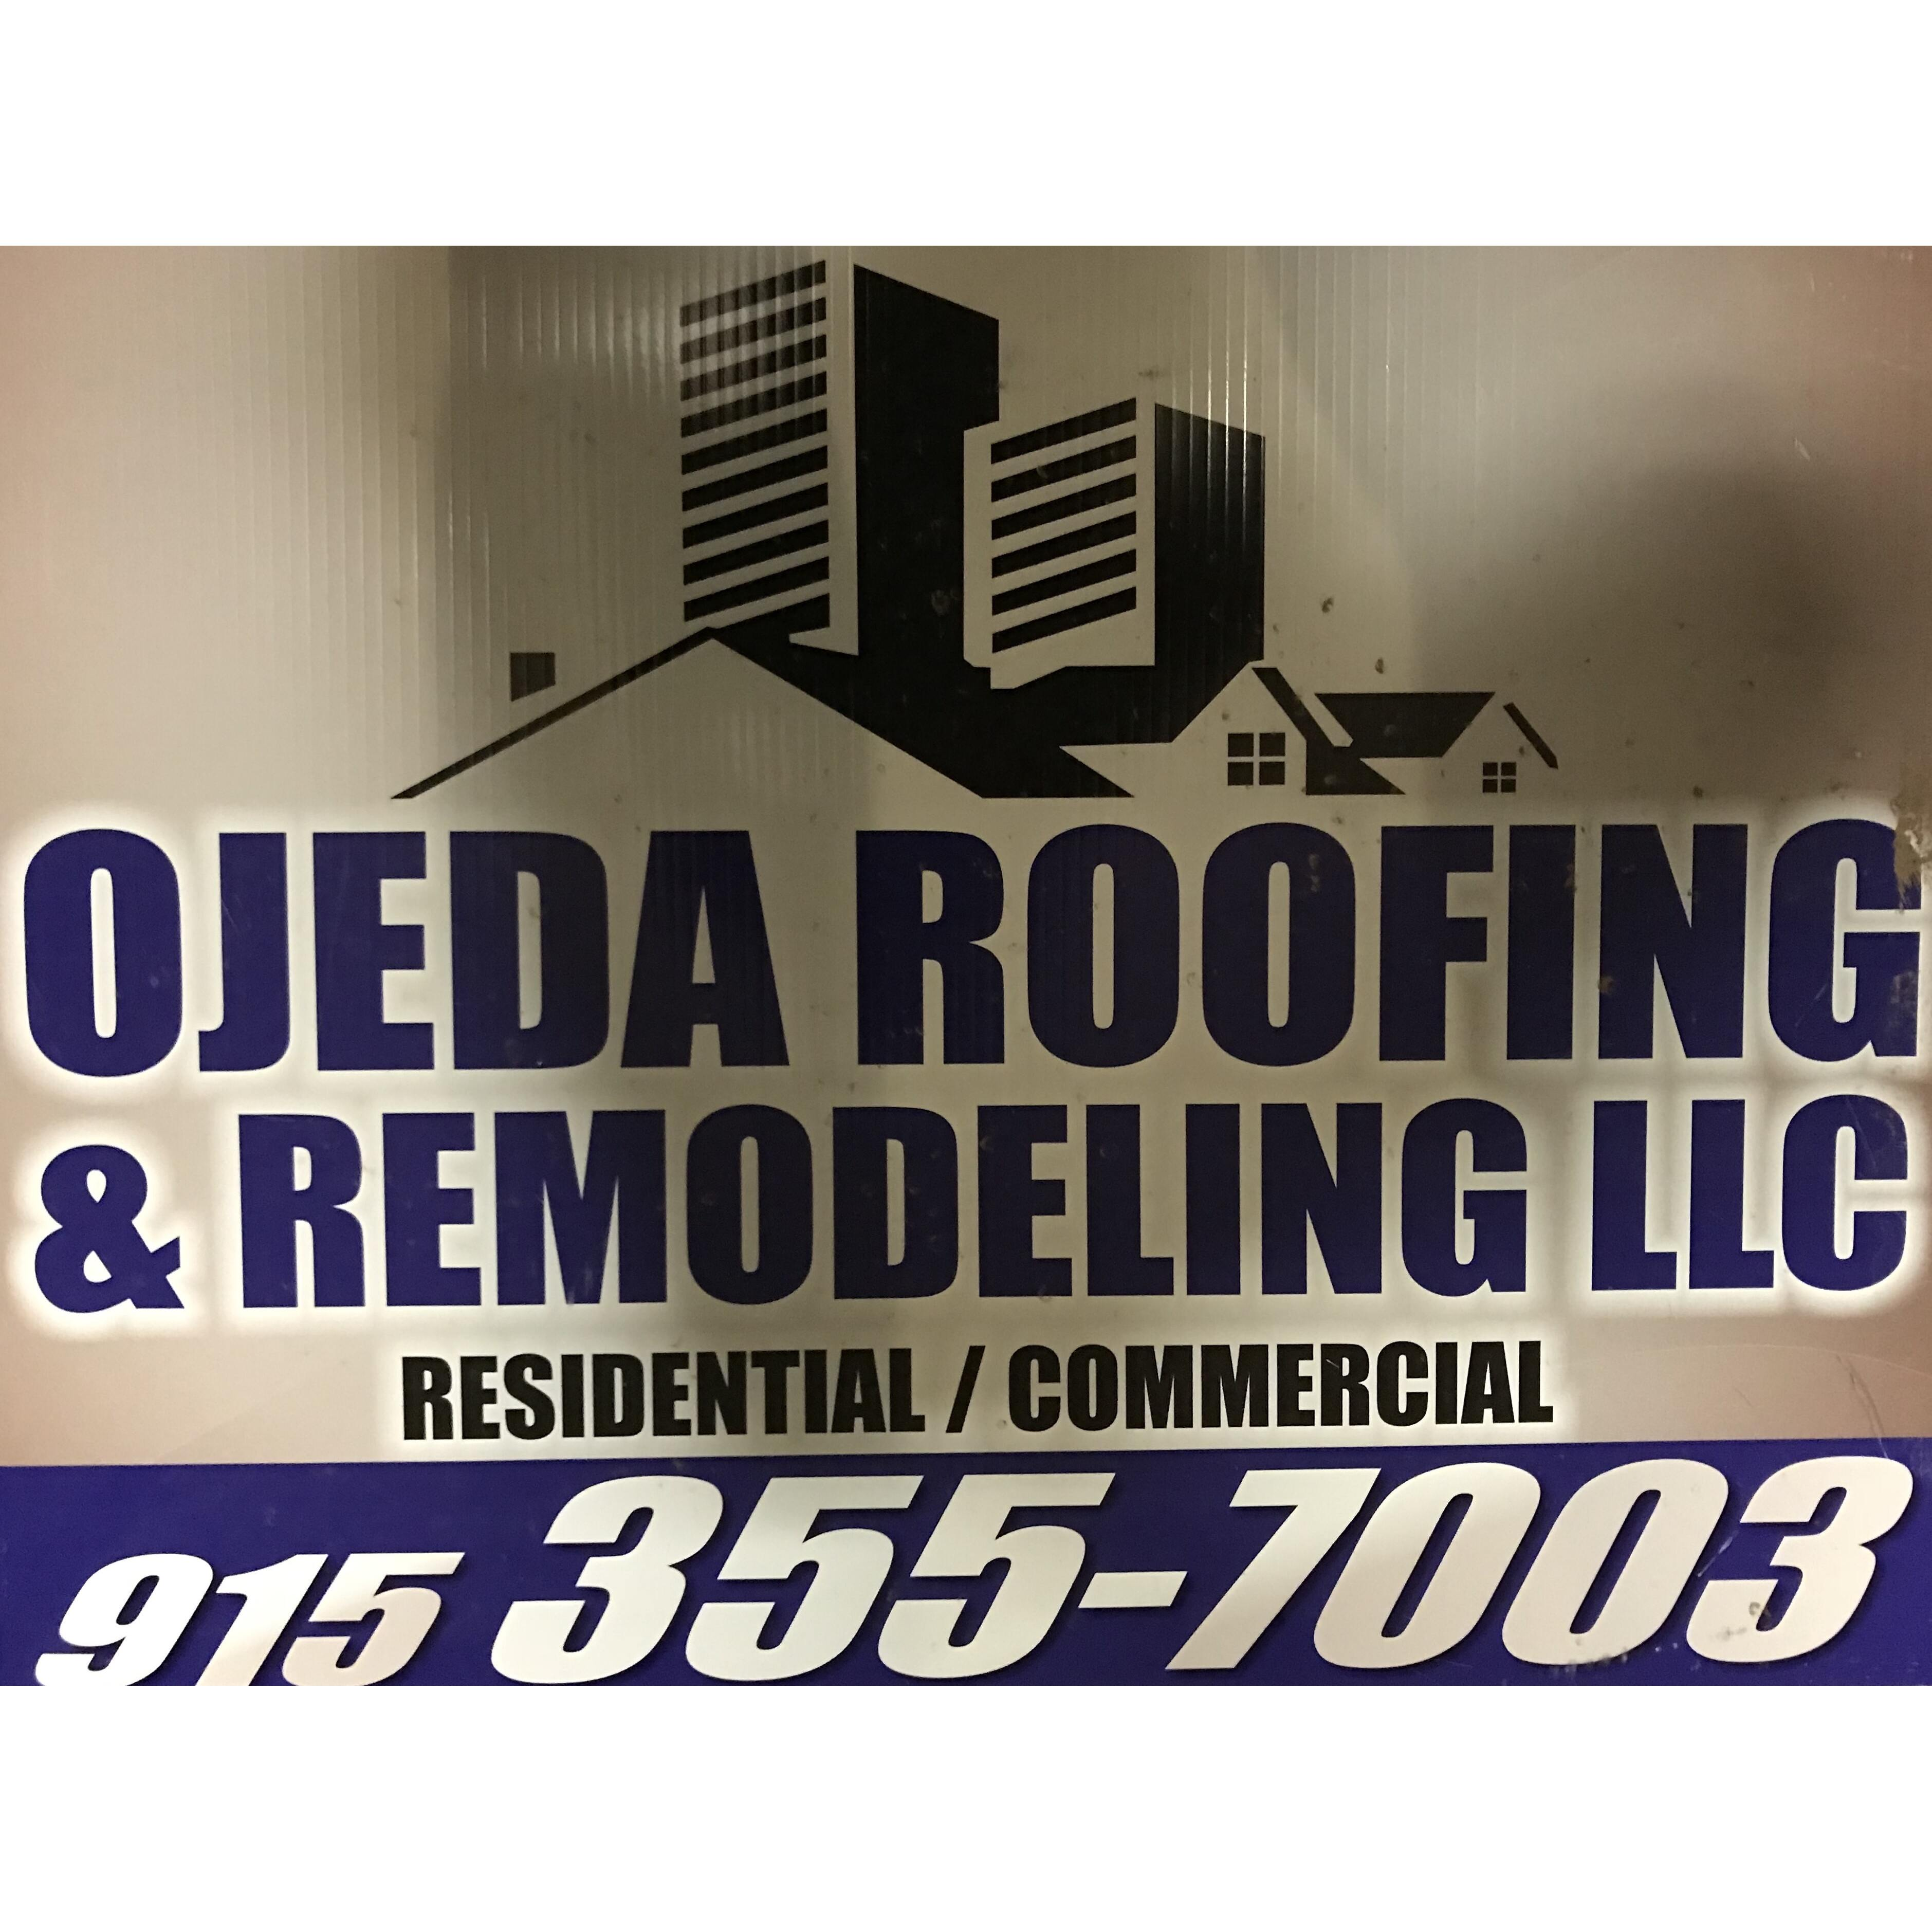 Ojeda's Roofing and Remodeling